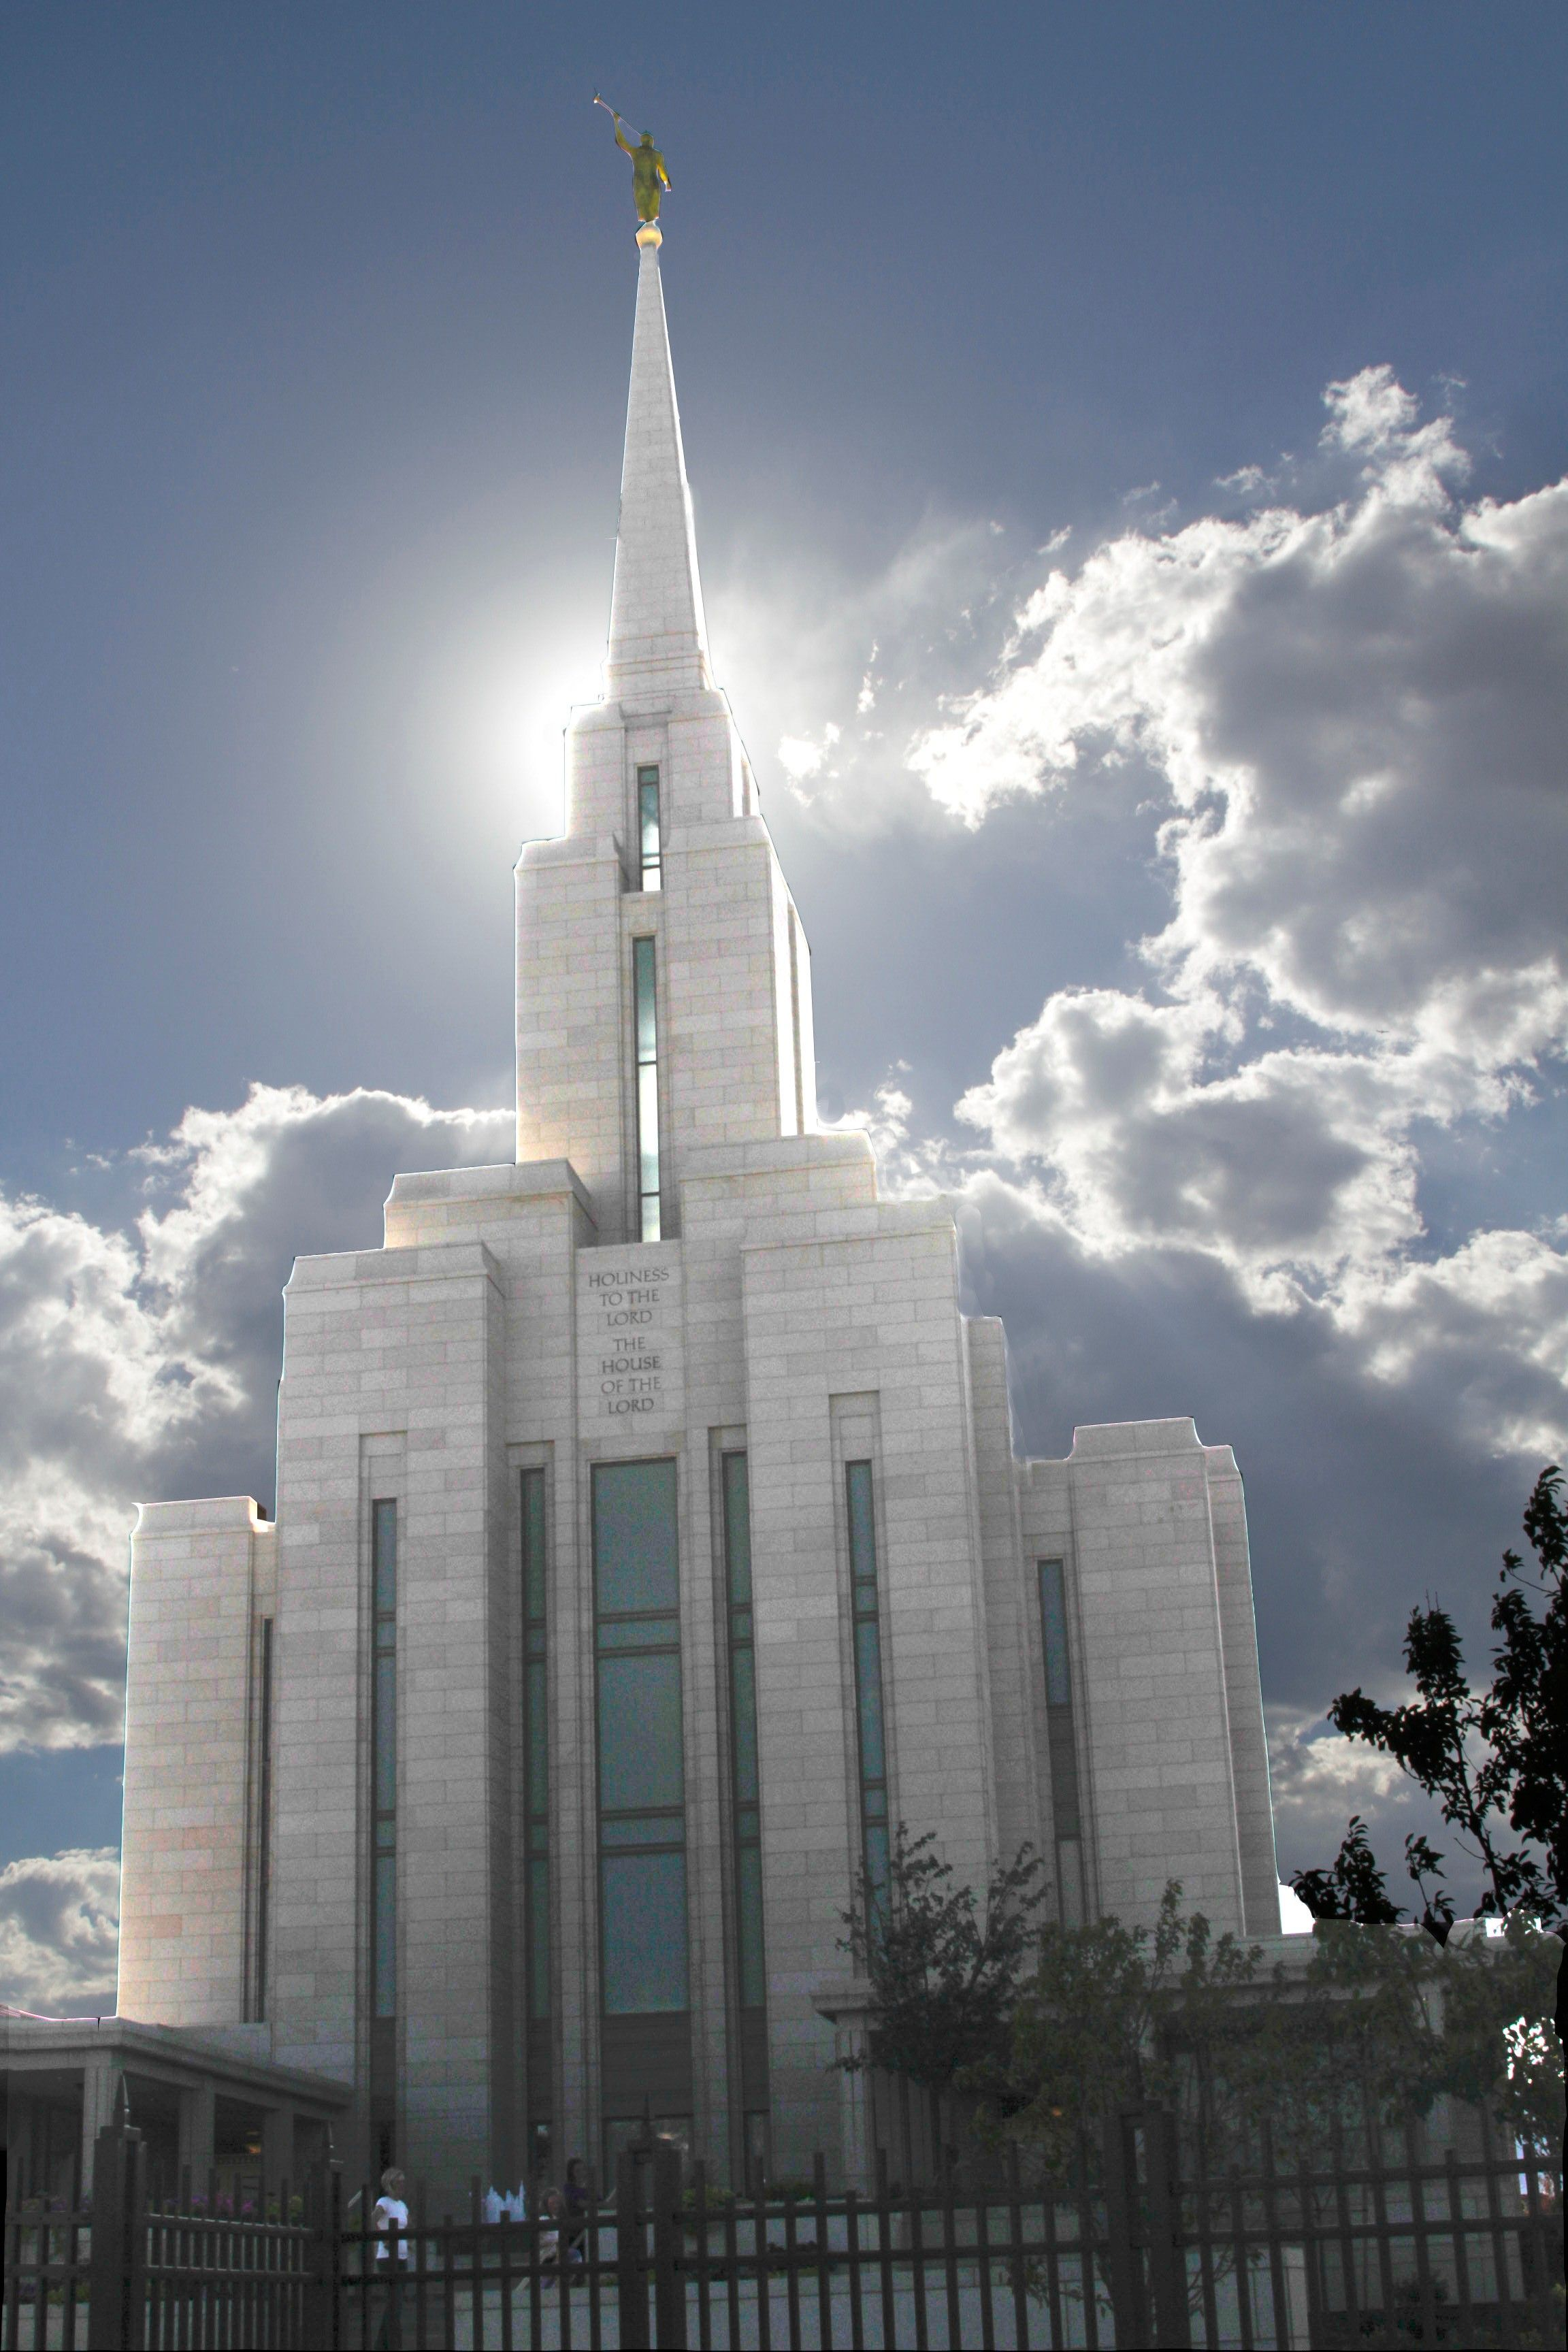 The Oquirrh Mountain Utah Temple, including entrance.